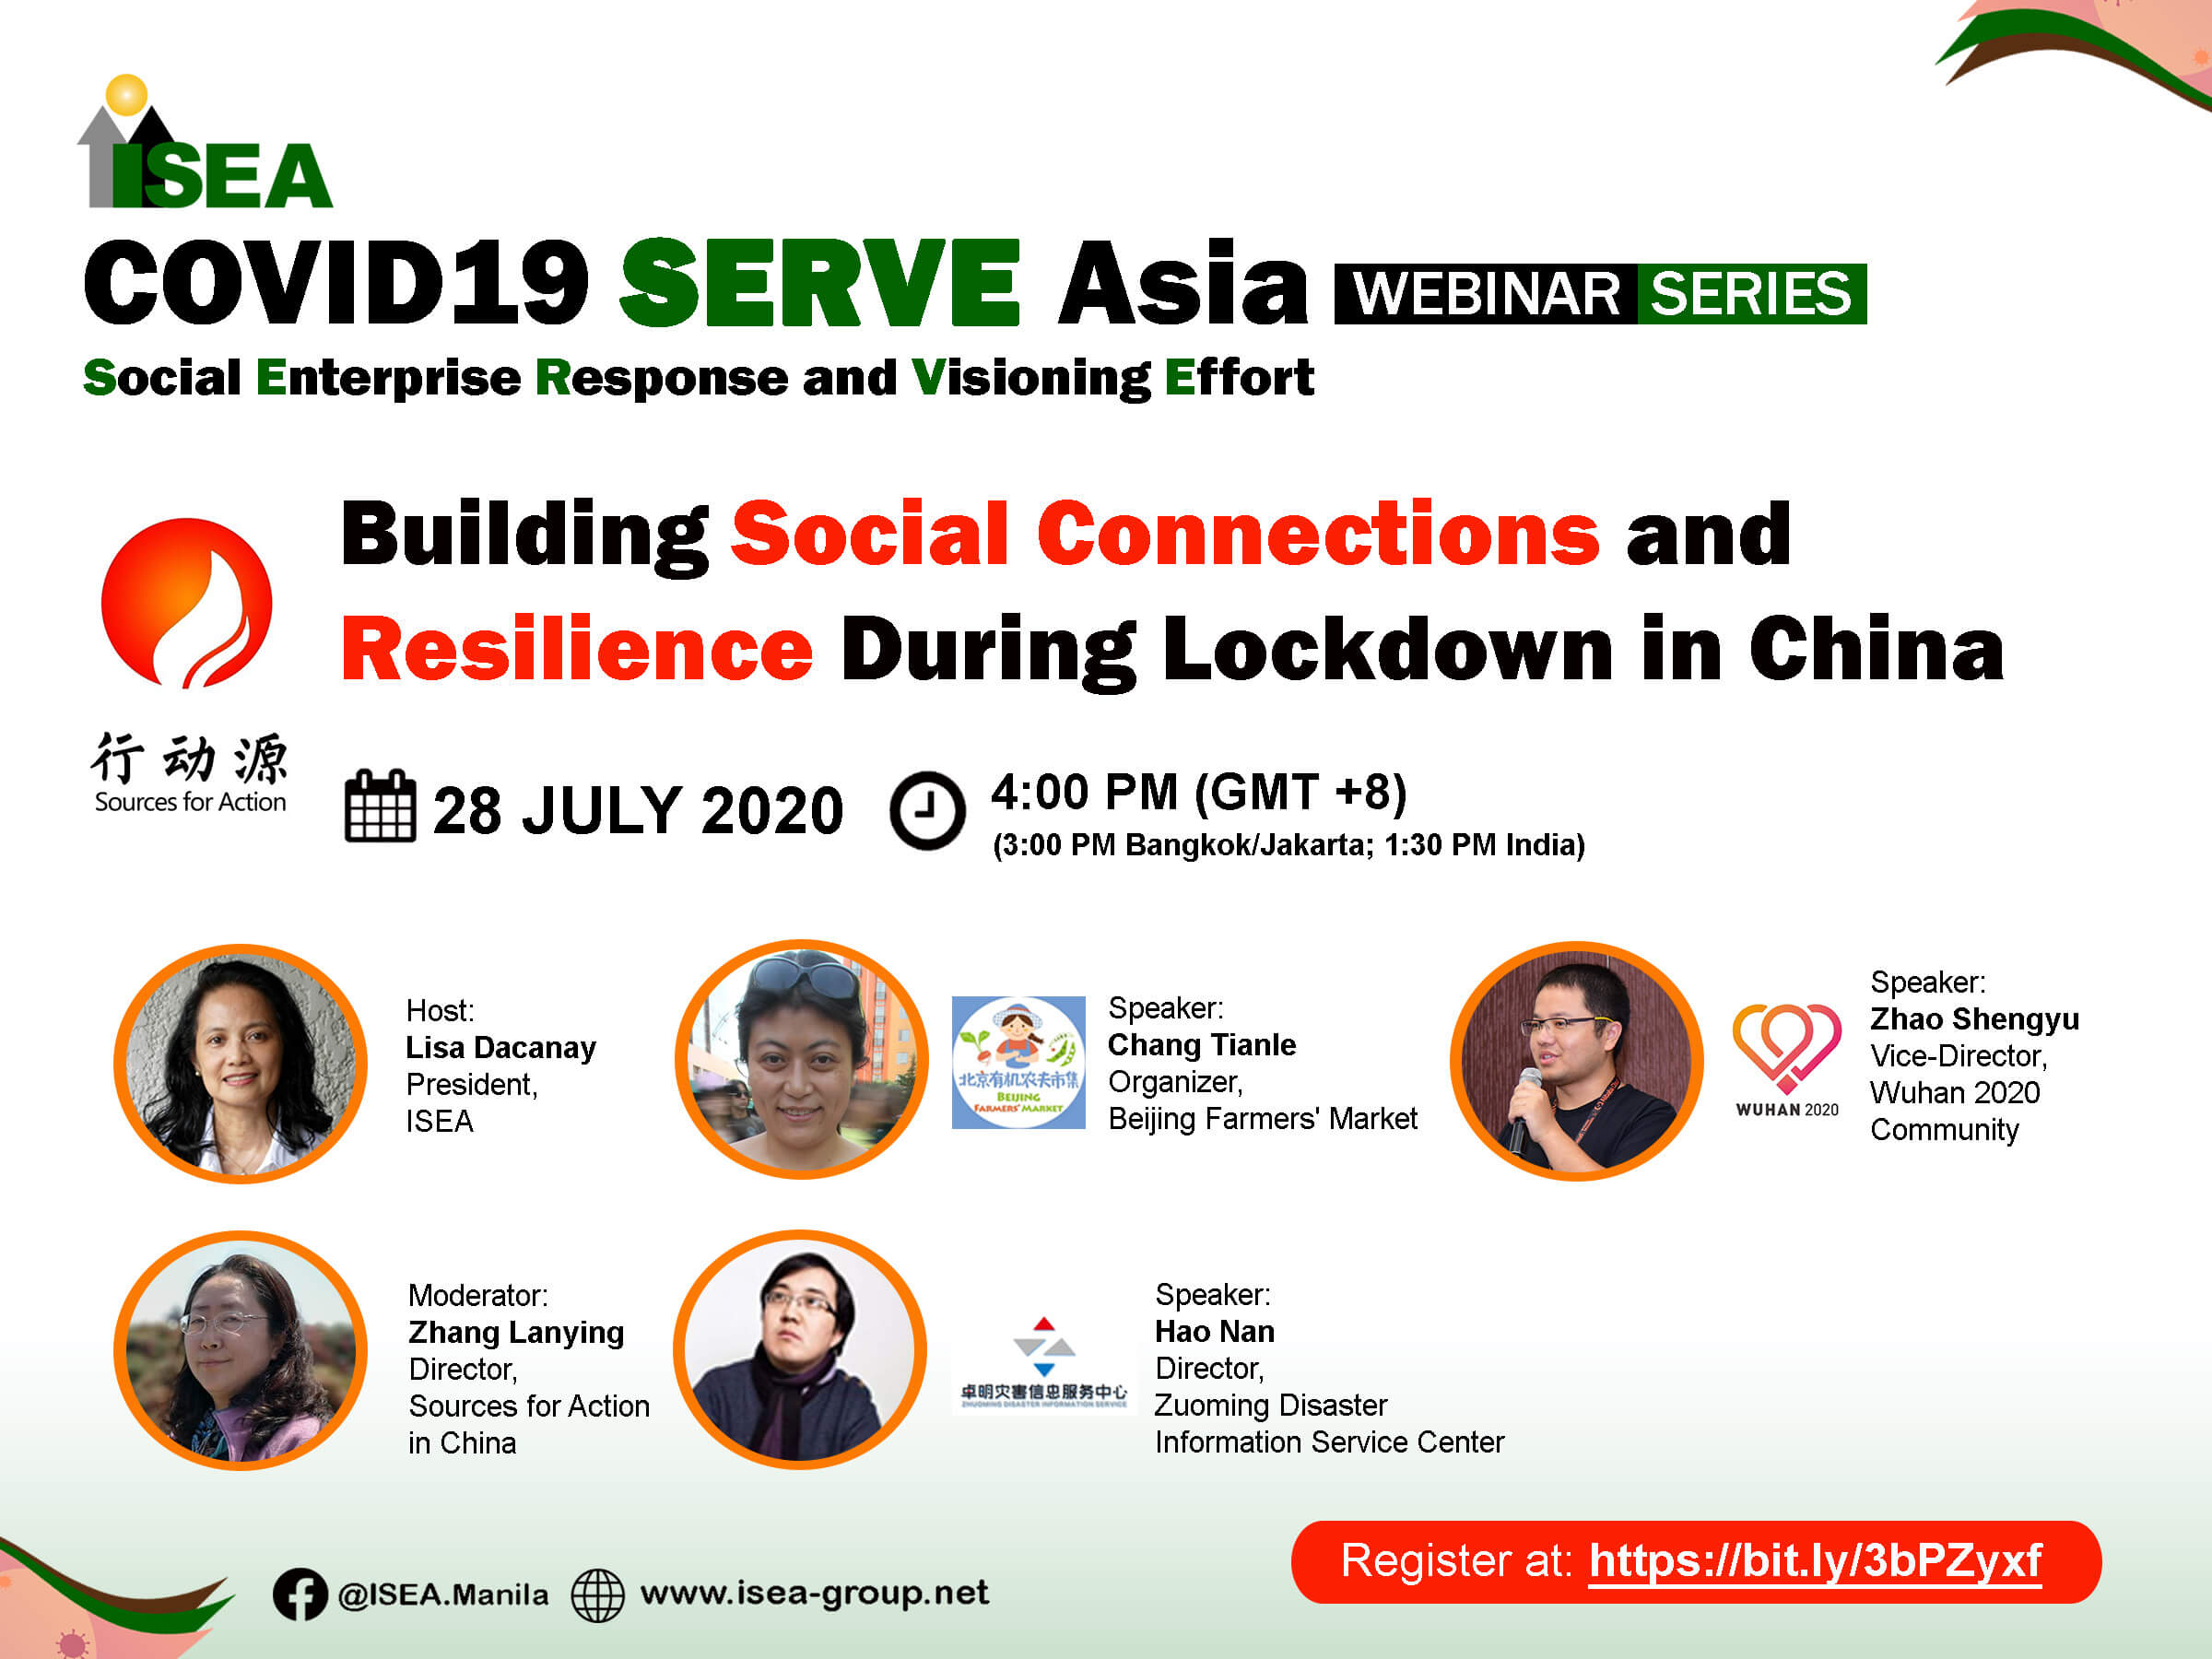 COVID SERVE Asia Webinar: Building Social Connections and Resilience During Lockdown in China